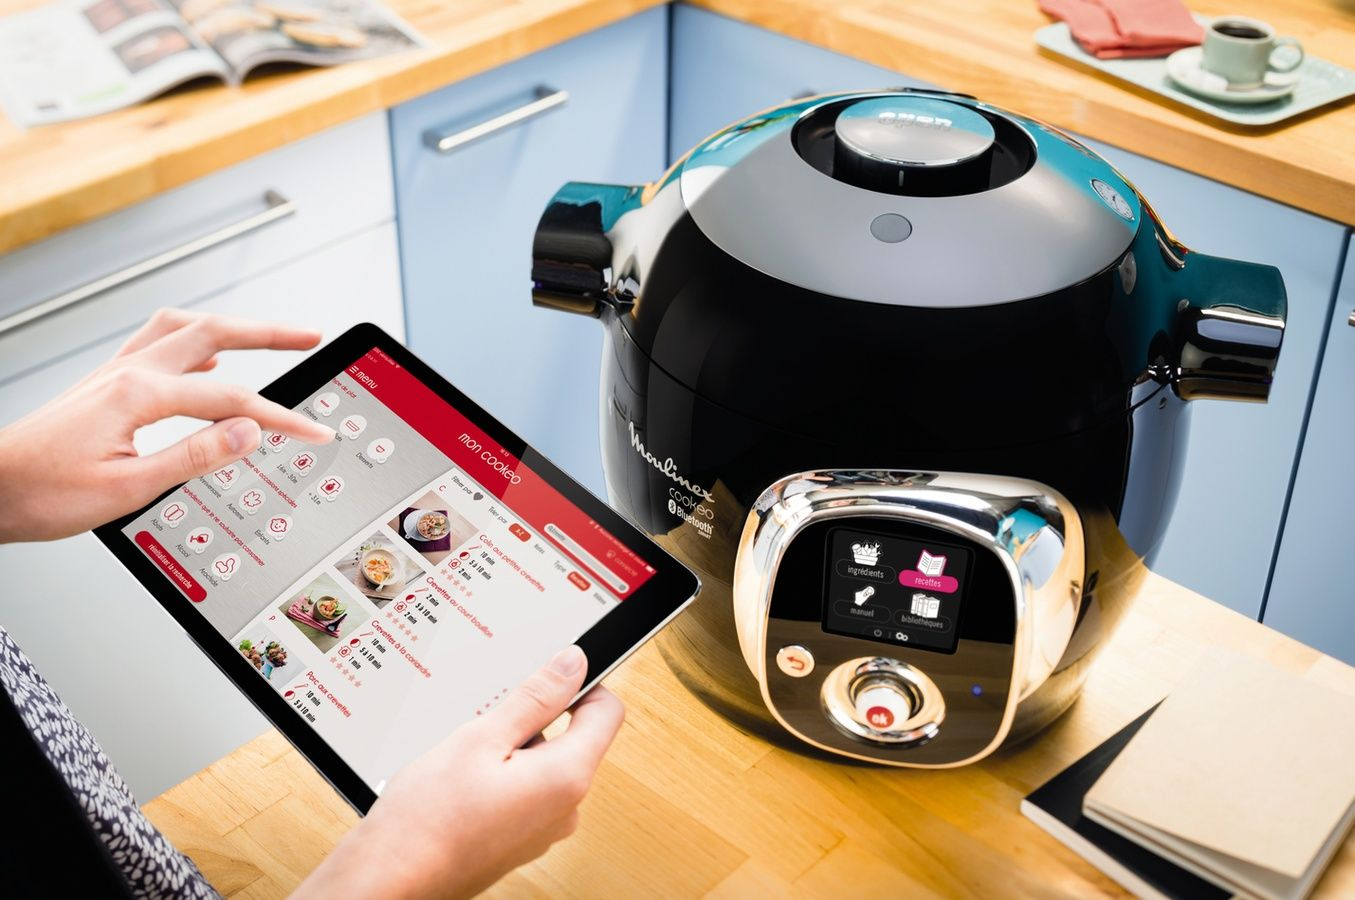 Cookeo Connect By Moulinex Is An Easy To Use Cooking